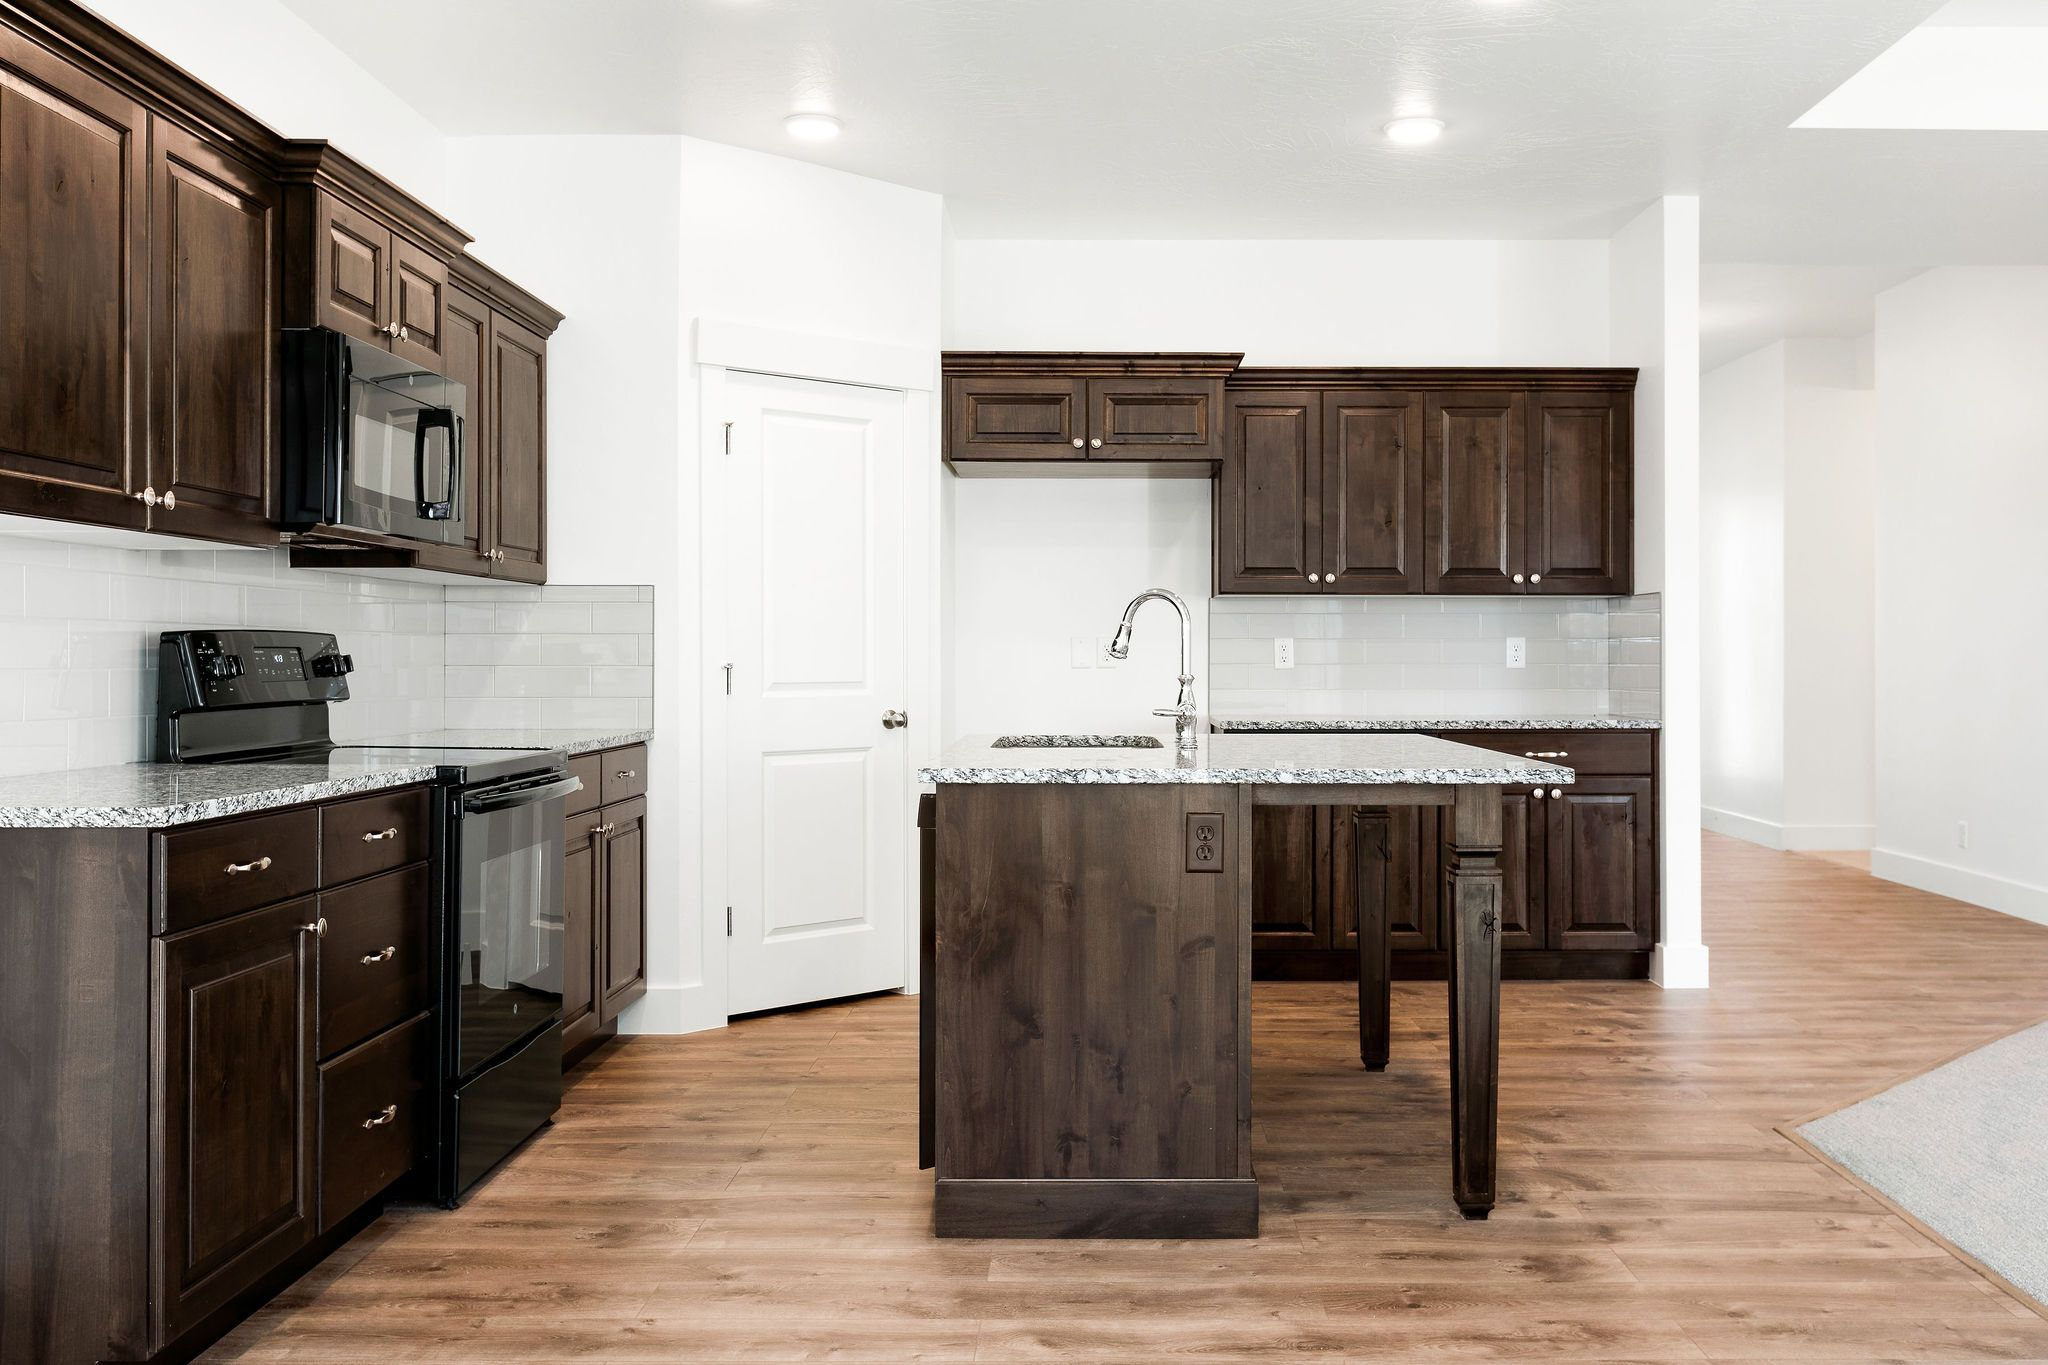 Kitchen featured in the Mesa (SOG) By Visionary Homes in St. George, UT